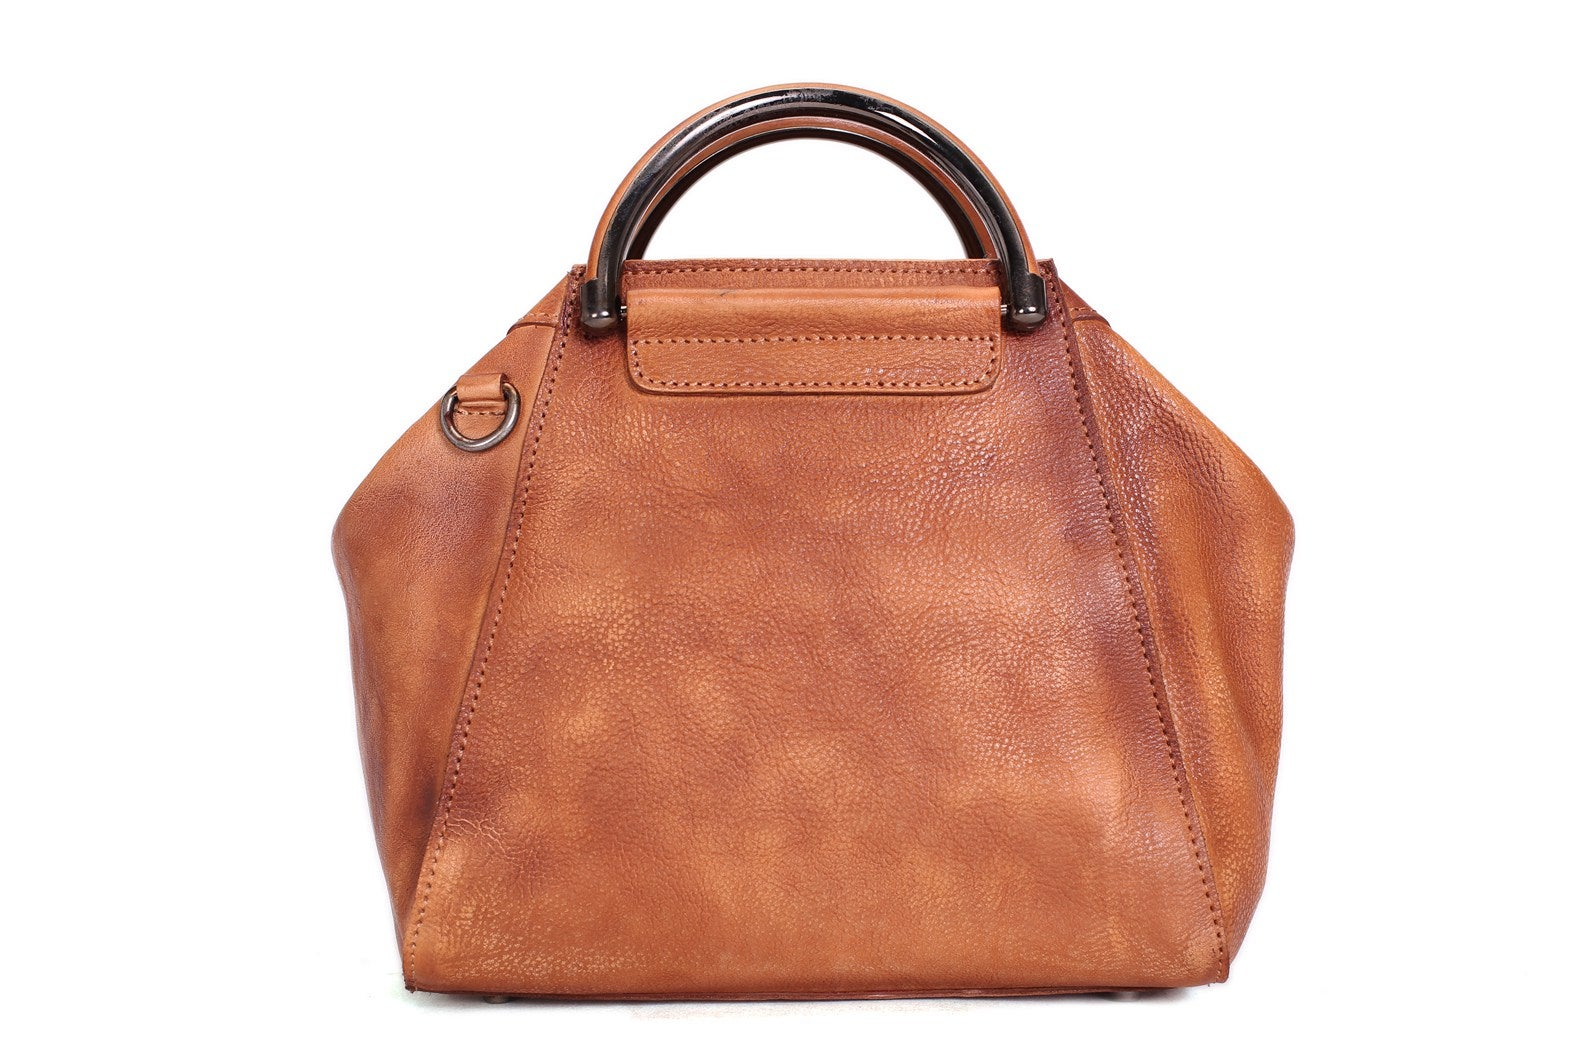 Handmade Full Grain Leather Women Handbag Designer Satchel Bag Wf52